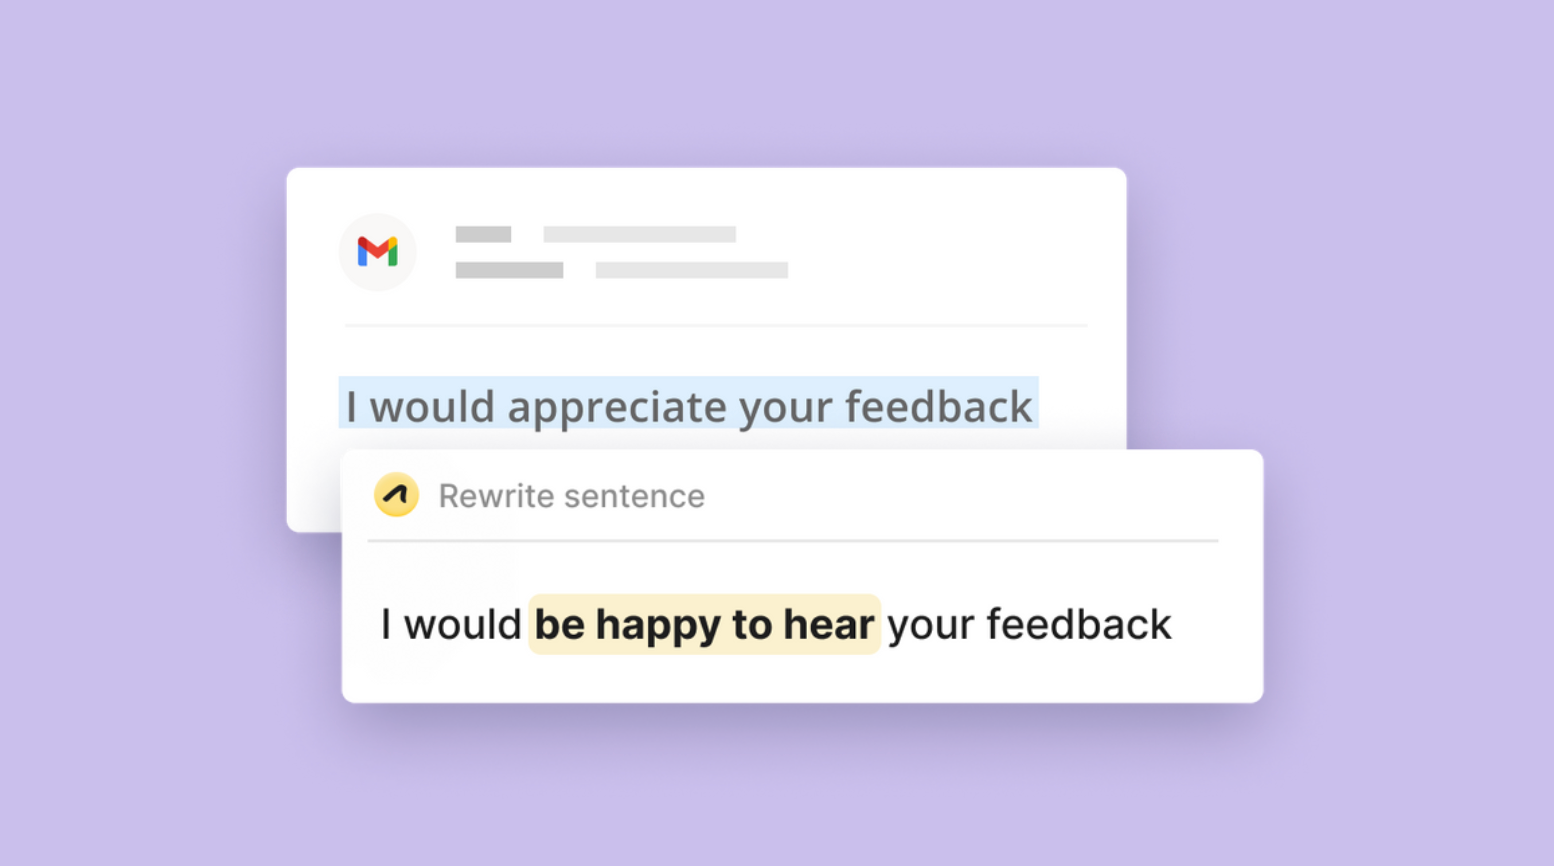 """Image of an email. The sentence """"I would appreciate your feedback"""" is highlighted. Outwrite suggests the alternative """"I would be happy to hear your feedback""""."""